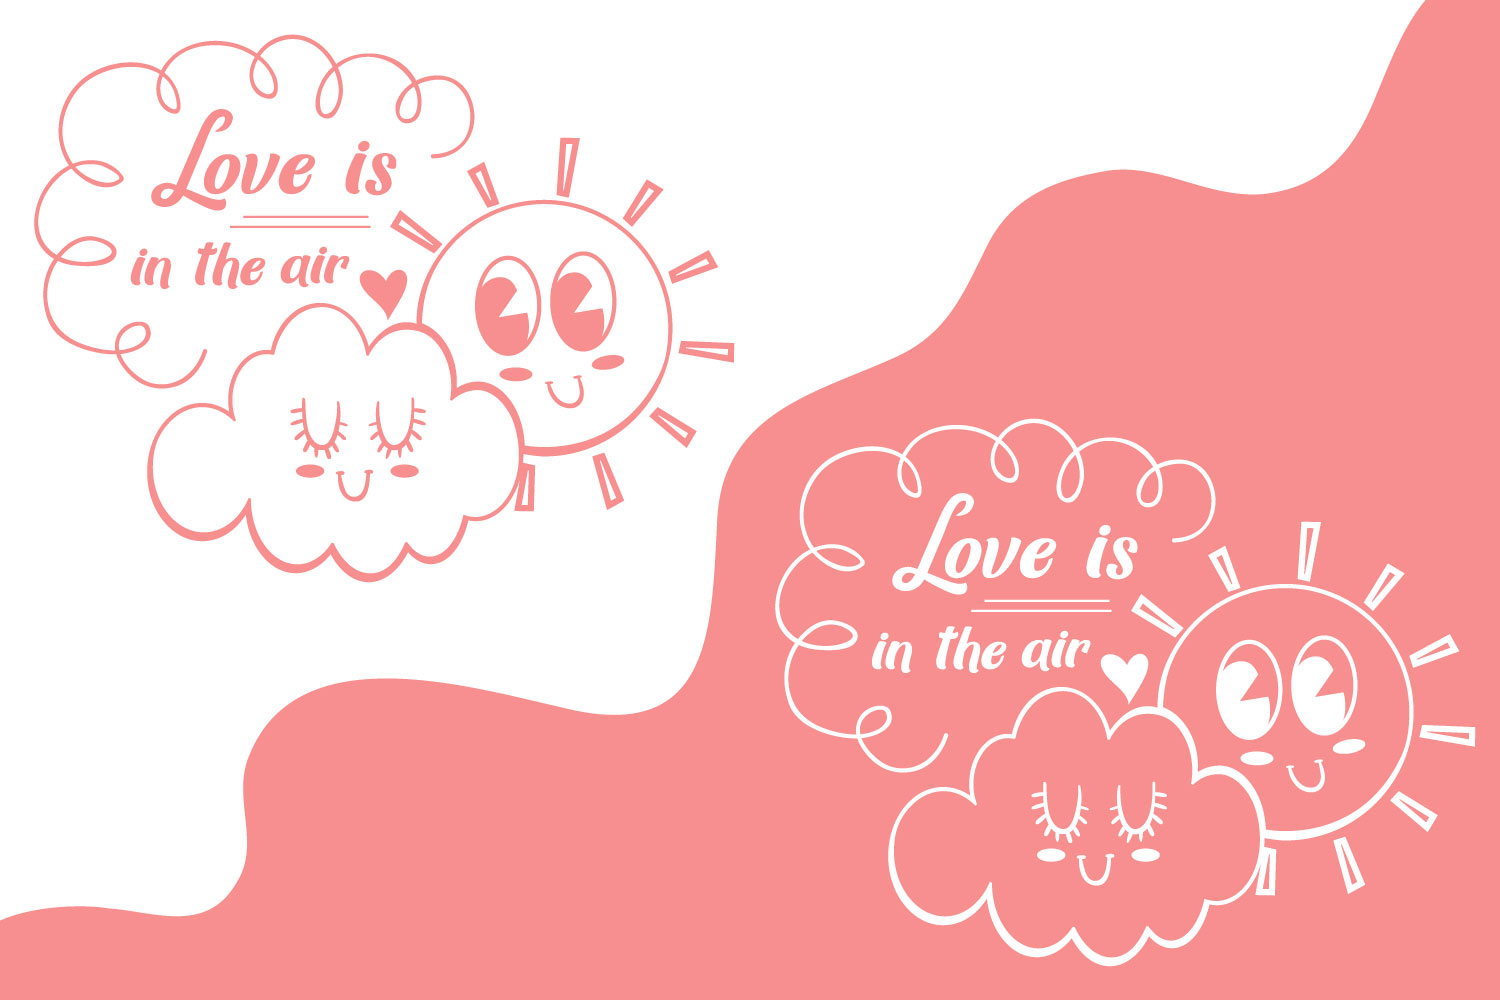 Love is in the air - Valentine SVG cut file example image 2